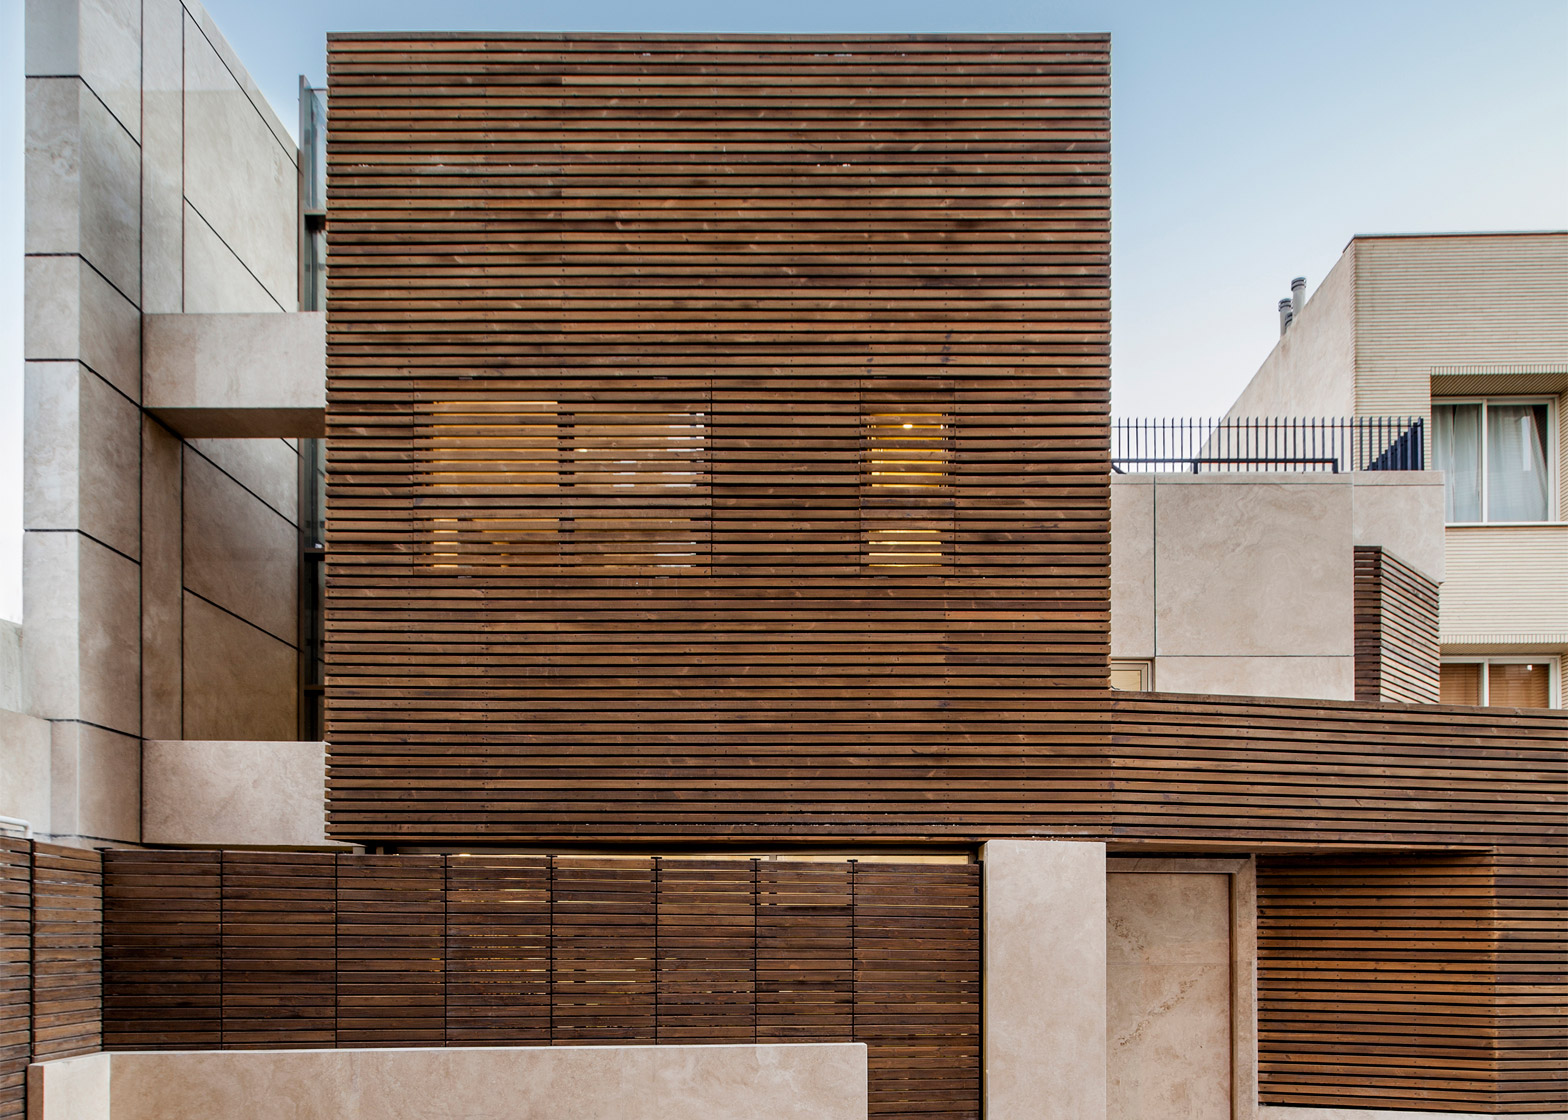 5 of 5; Bagh-Janat residential architecture with timber and travertine  cladding in Isfahan Iran by Bracket Design